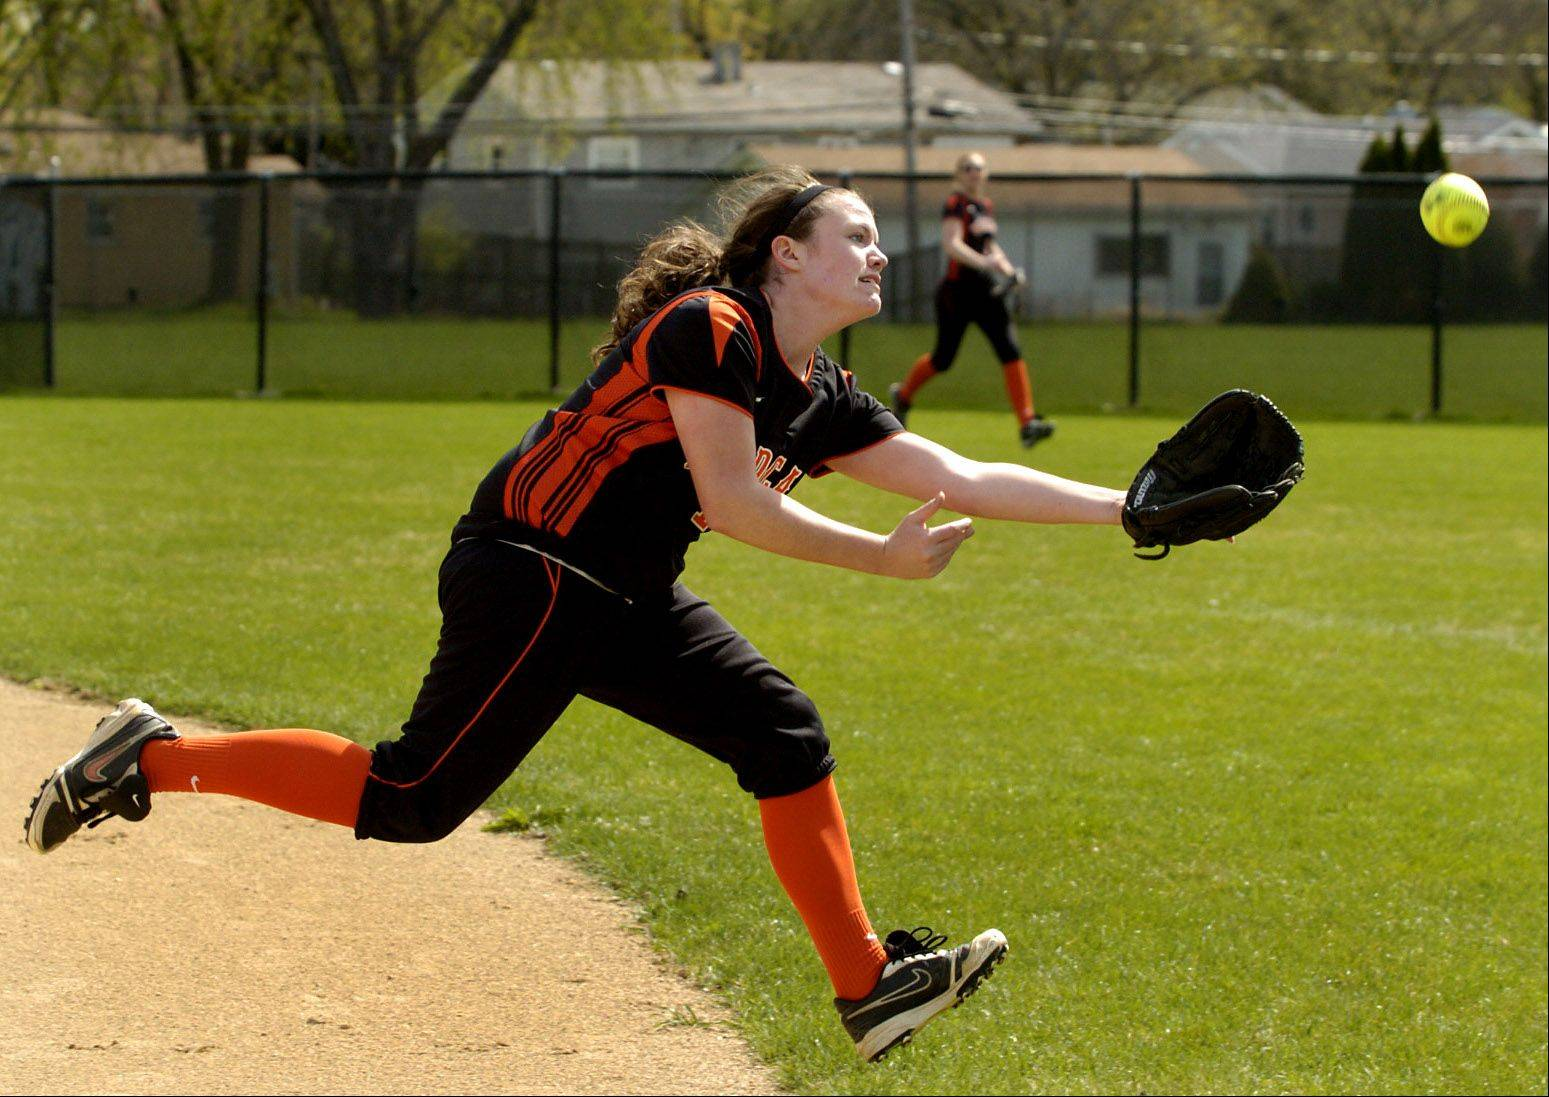 Libertyville first baseman Val Steinhauser just misses the ball during Thursday's softball game against Rolling Meadows.